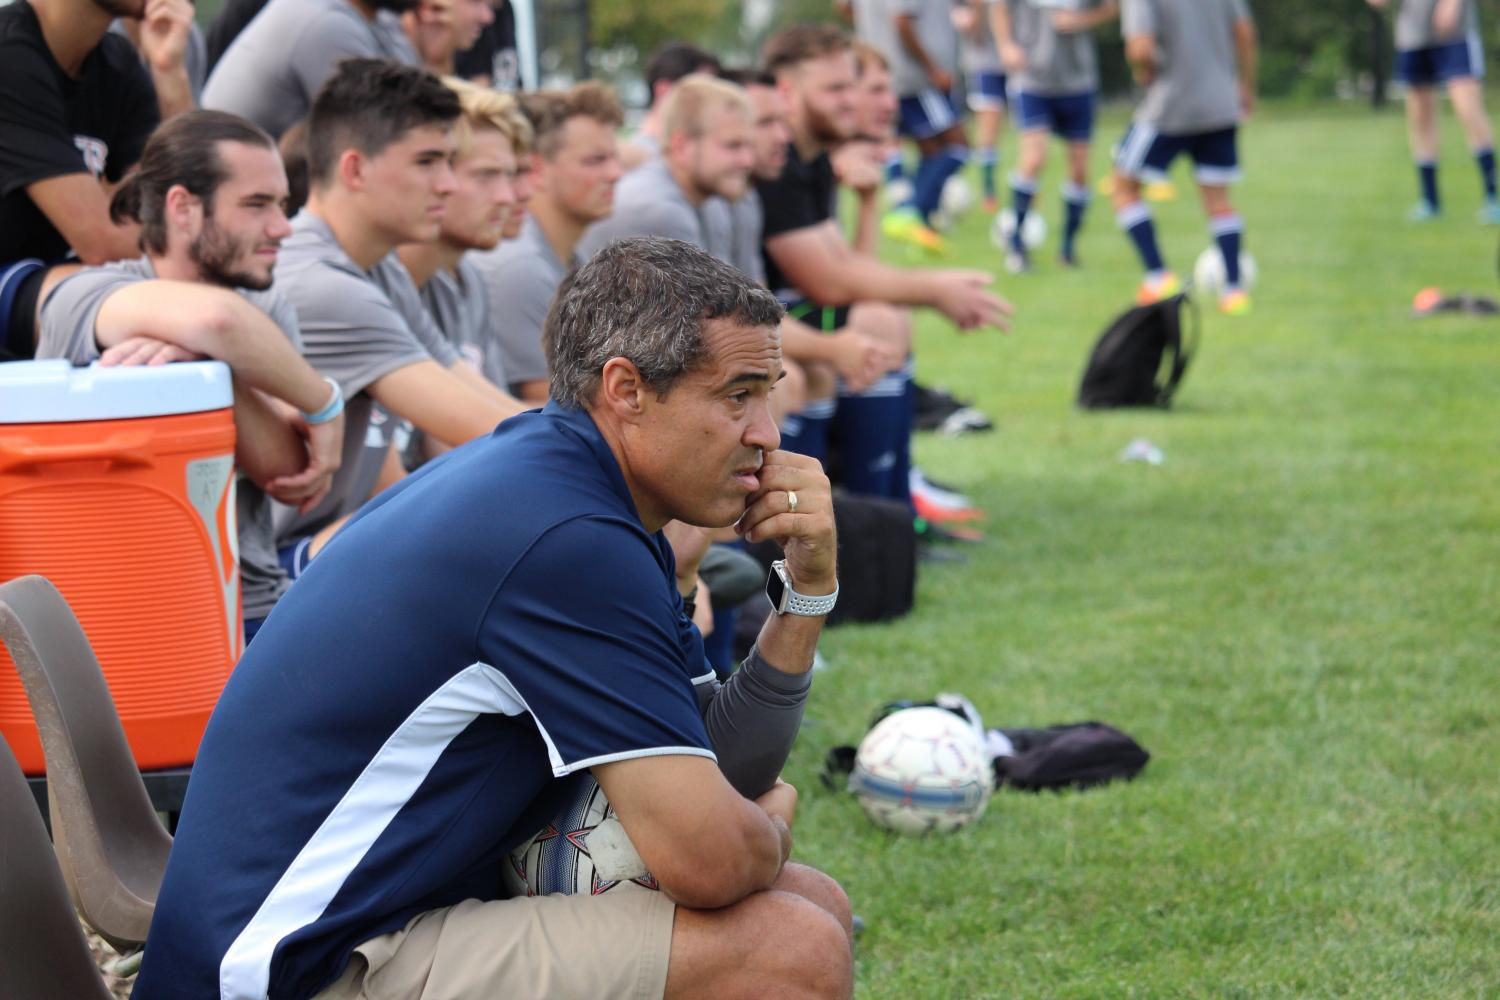 Head mens soccer coach Nate Houser oversees a Baker 2-0 win against Johnson County Community College in a scrimmage Aug. 12.